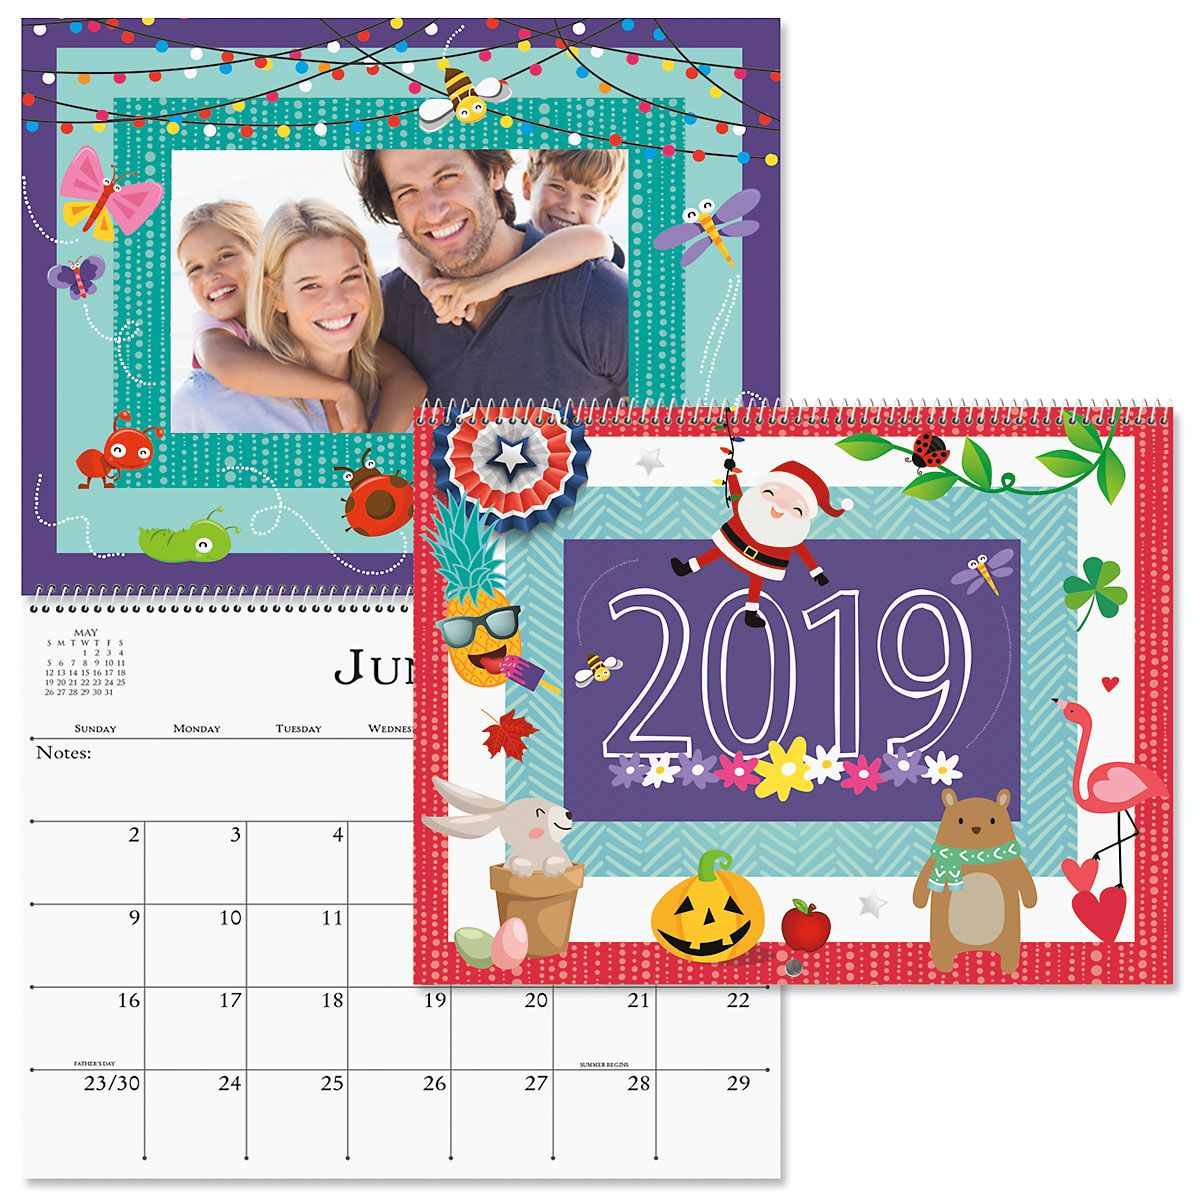 2019 Graphic Photo Calendar